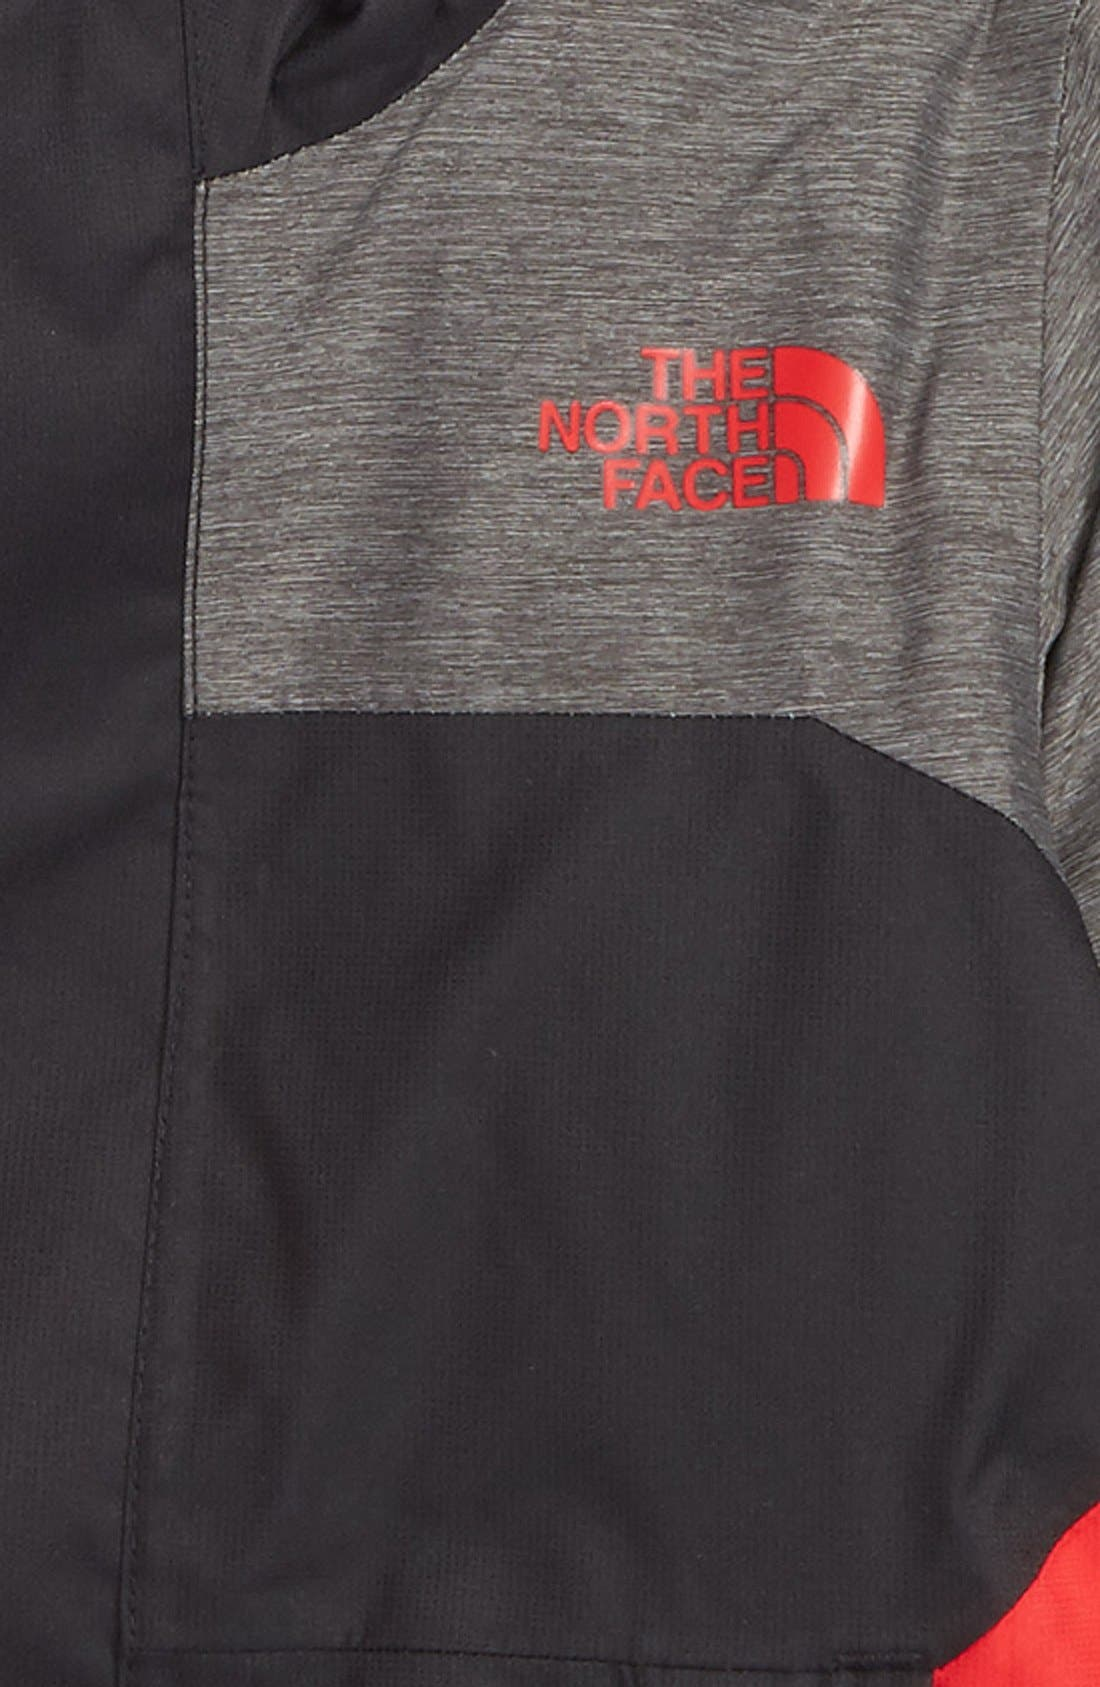 Alternate Image 2  - The North Face 'Vortex' TriClimate® Waterproof 3-in-1 Jacket (Toddler Boys & Little Boys)